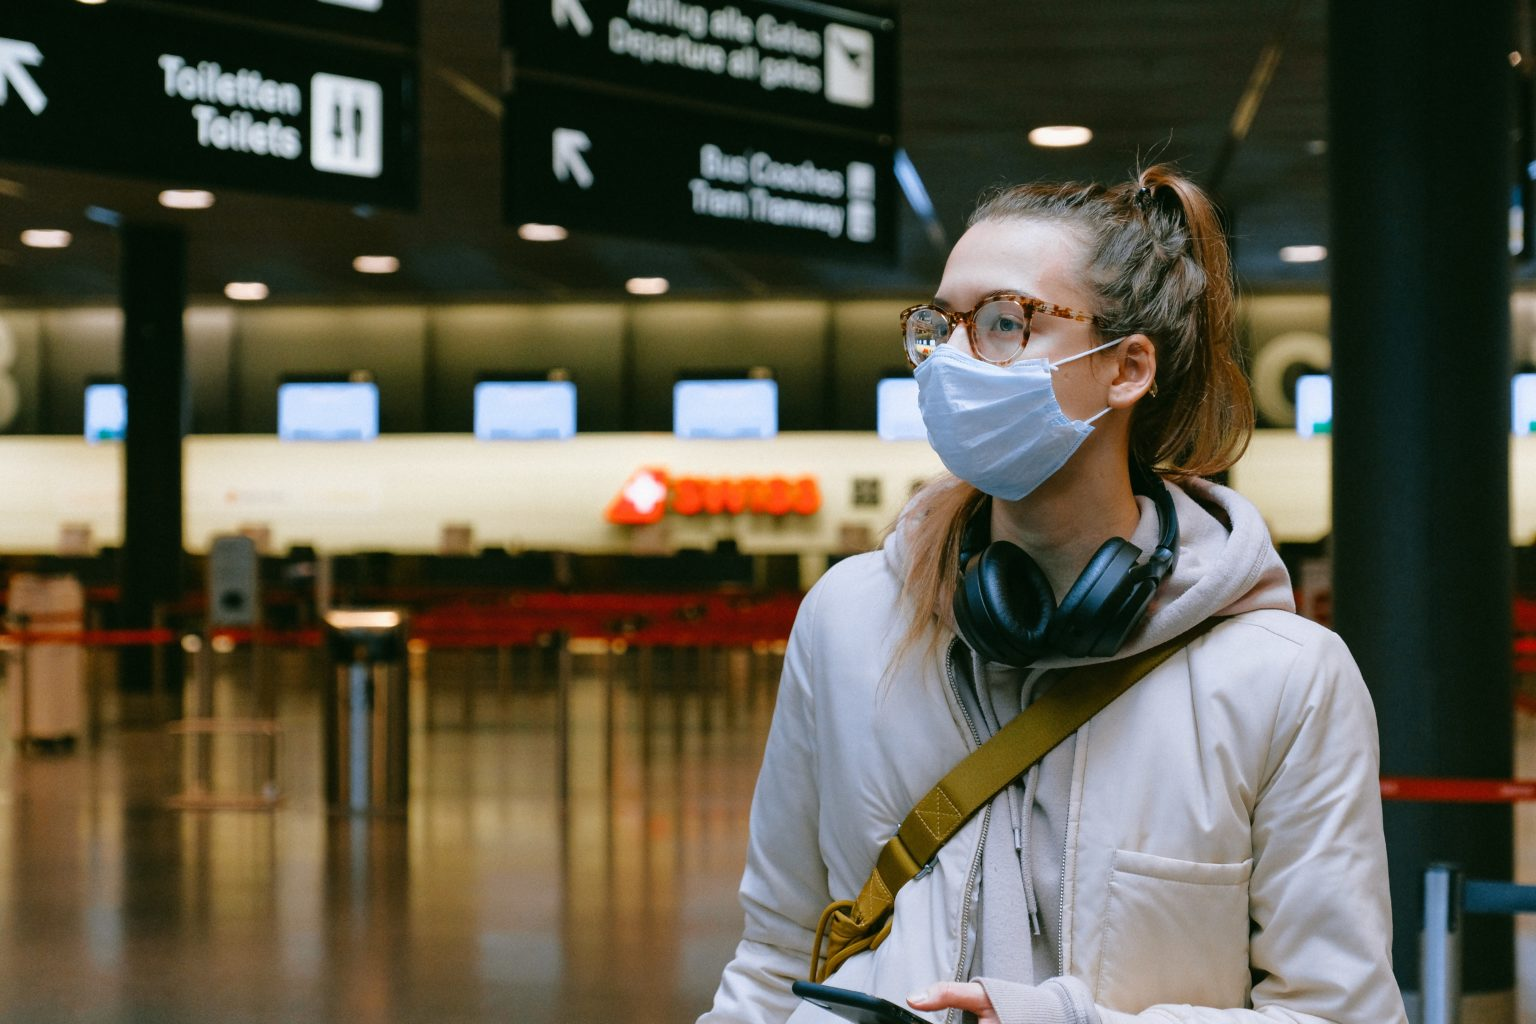 Woman at an airport with a mask on.